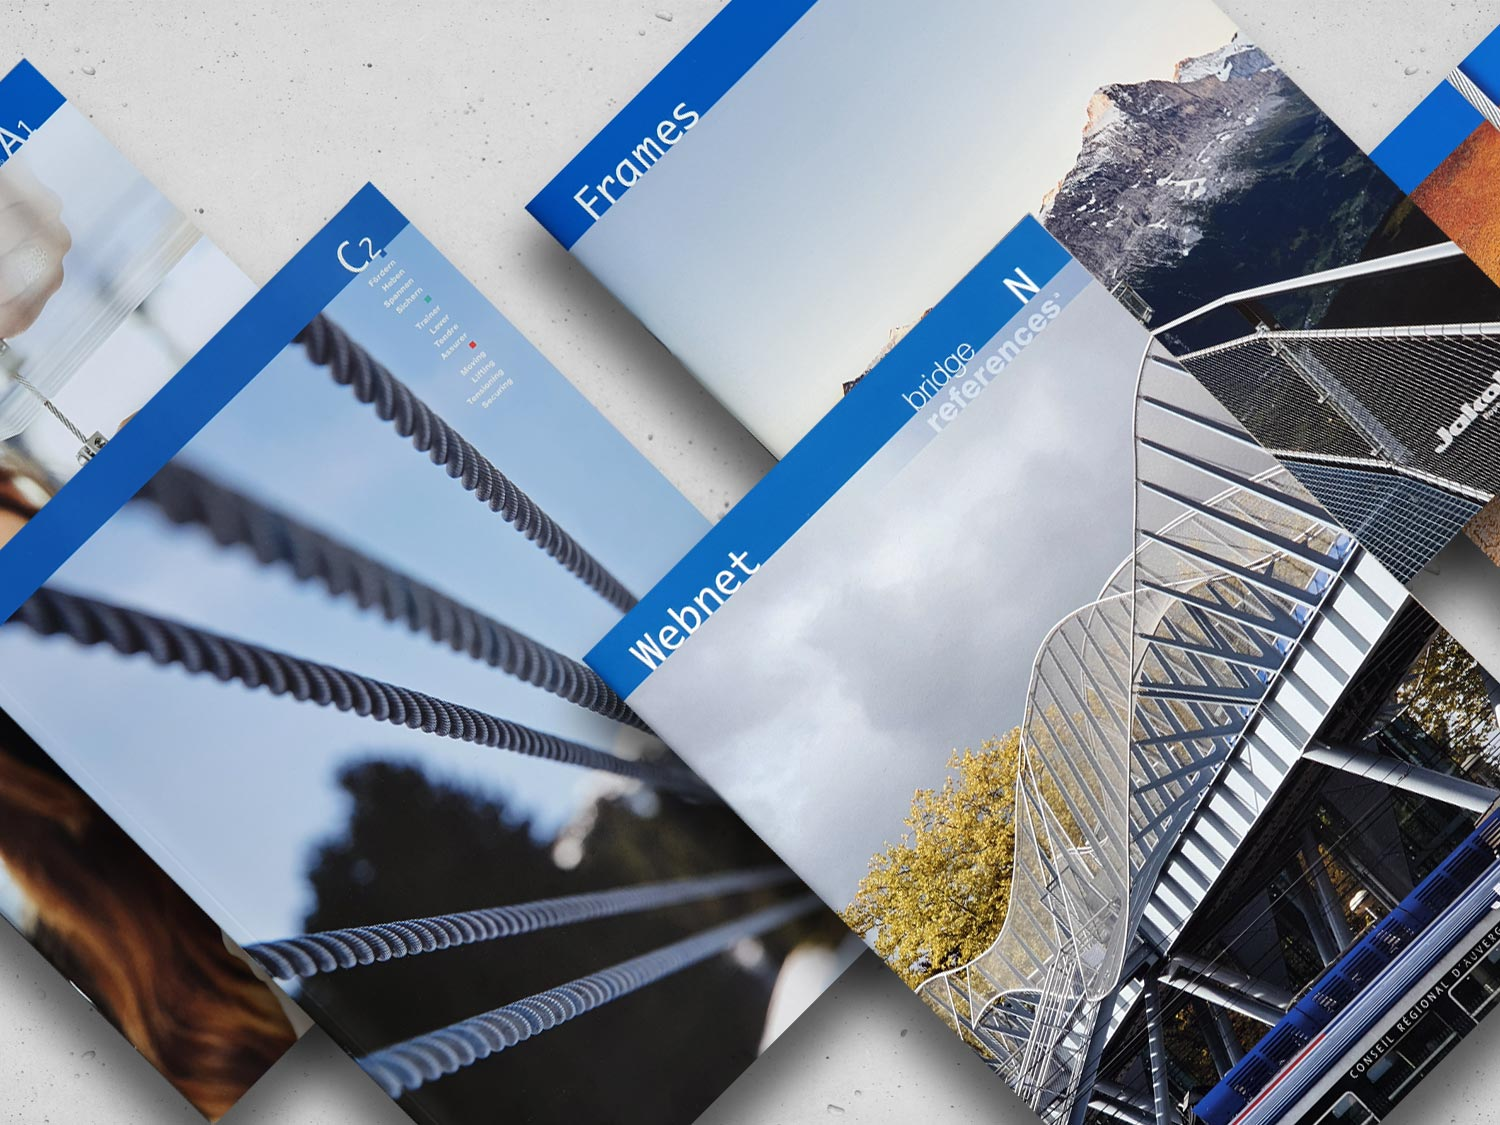 The collection of catalogues by Jakob Rope Systems